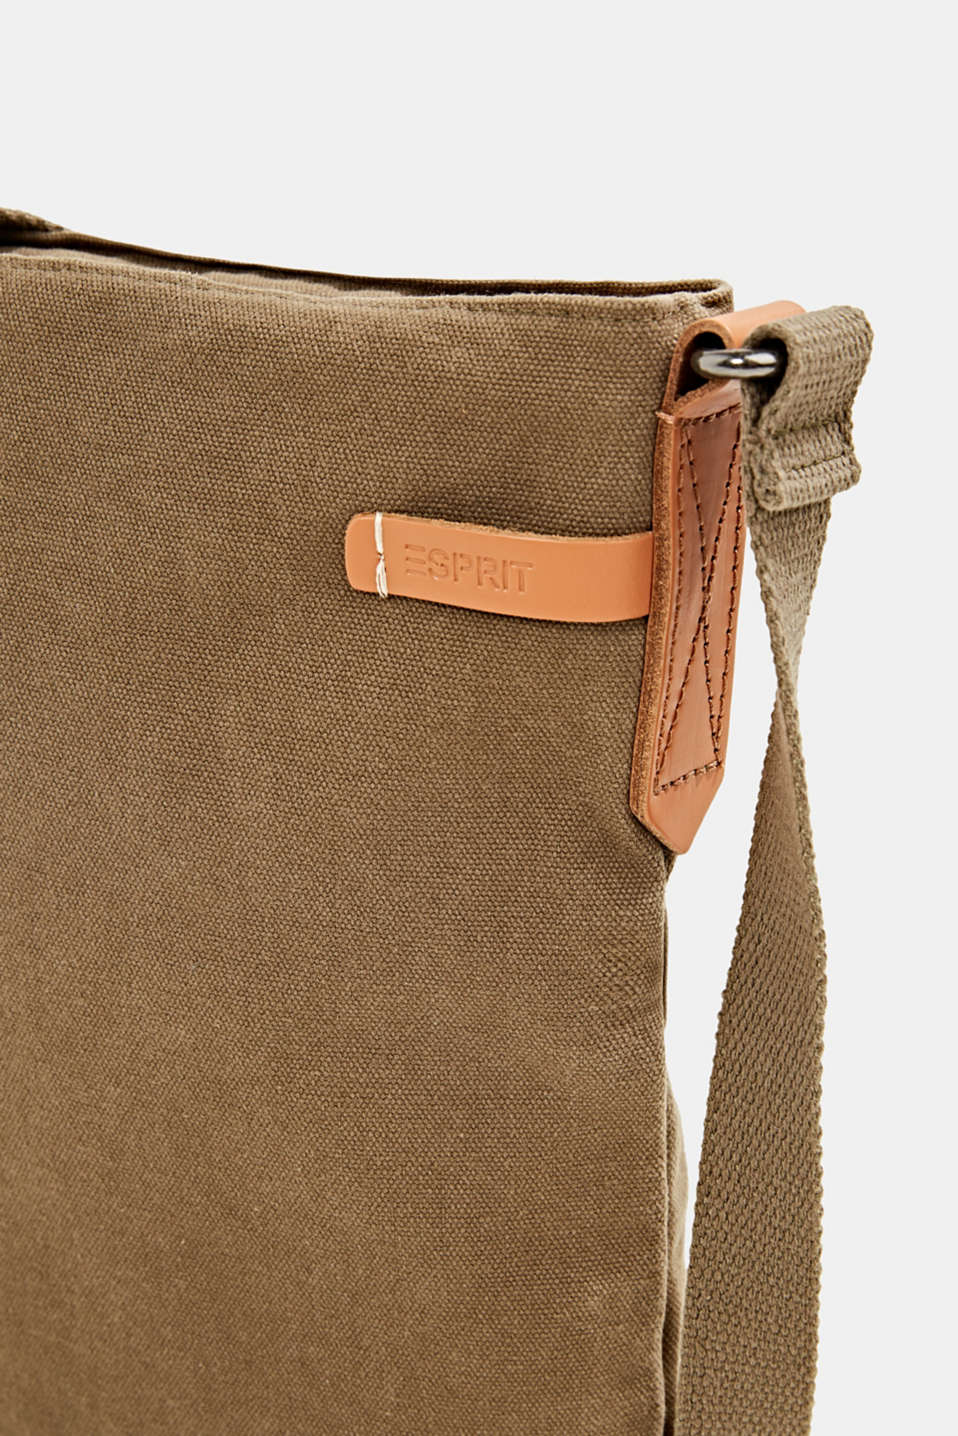 Canvas bag with leather details, LIGHT KHAKI, detail image number 3